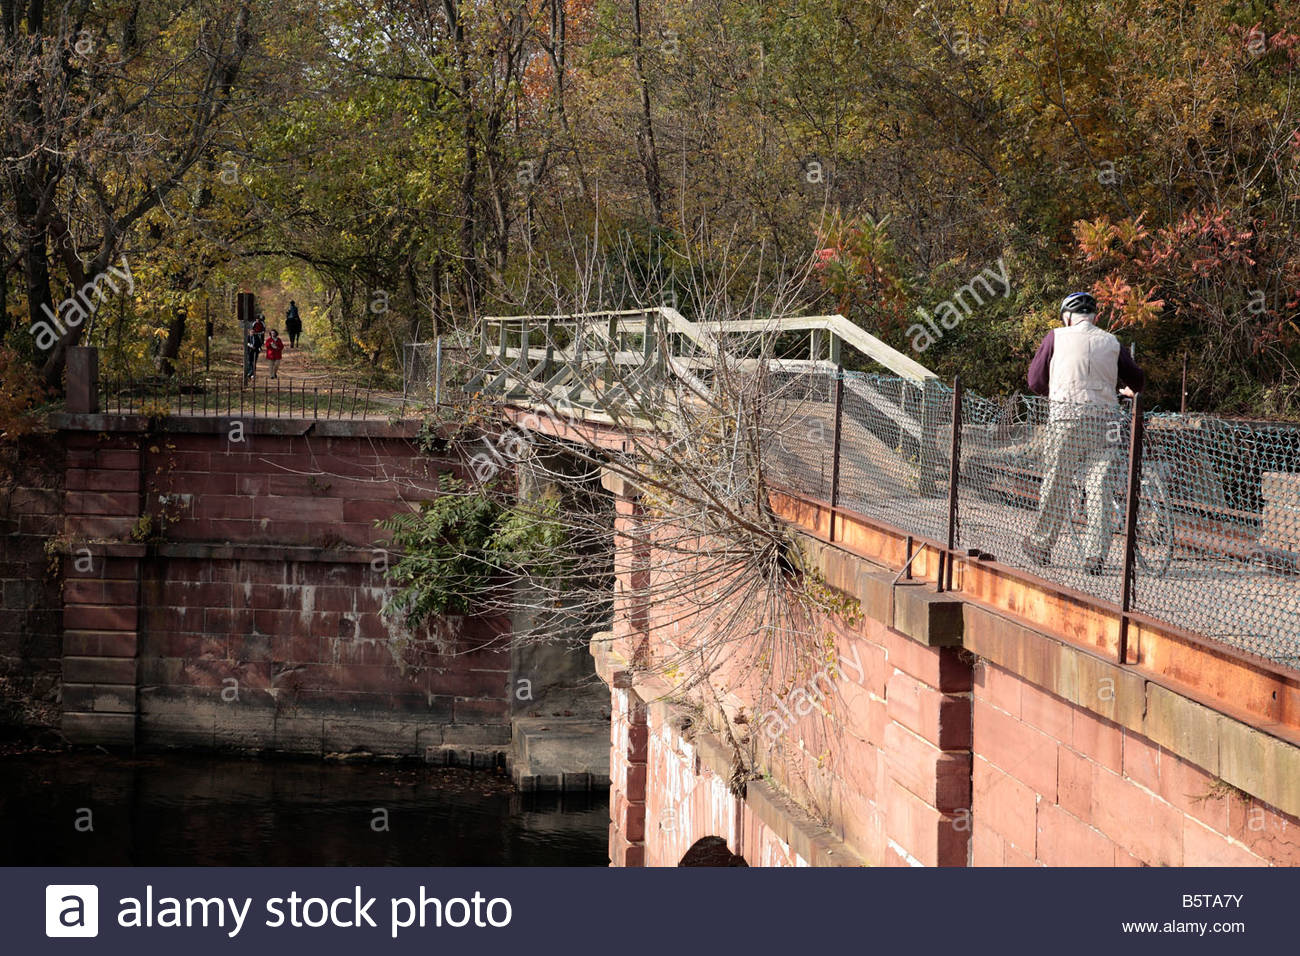 A cyclist, hikers and an equestrian use the C&O Canal towpath at Rileys Lock in Maryland. - Stock Image